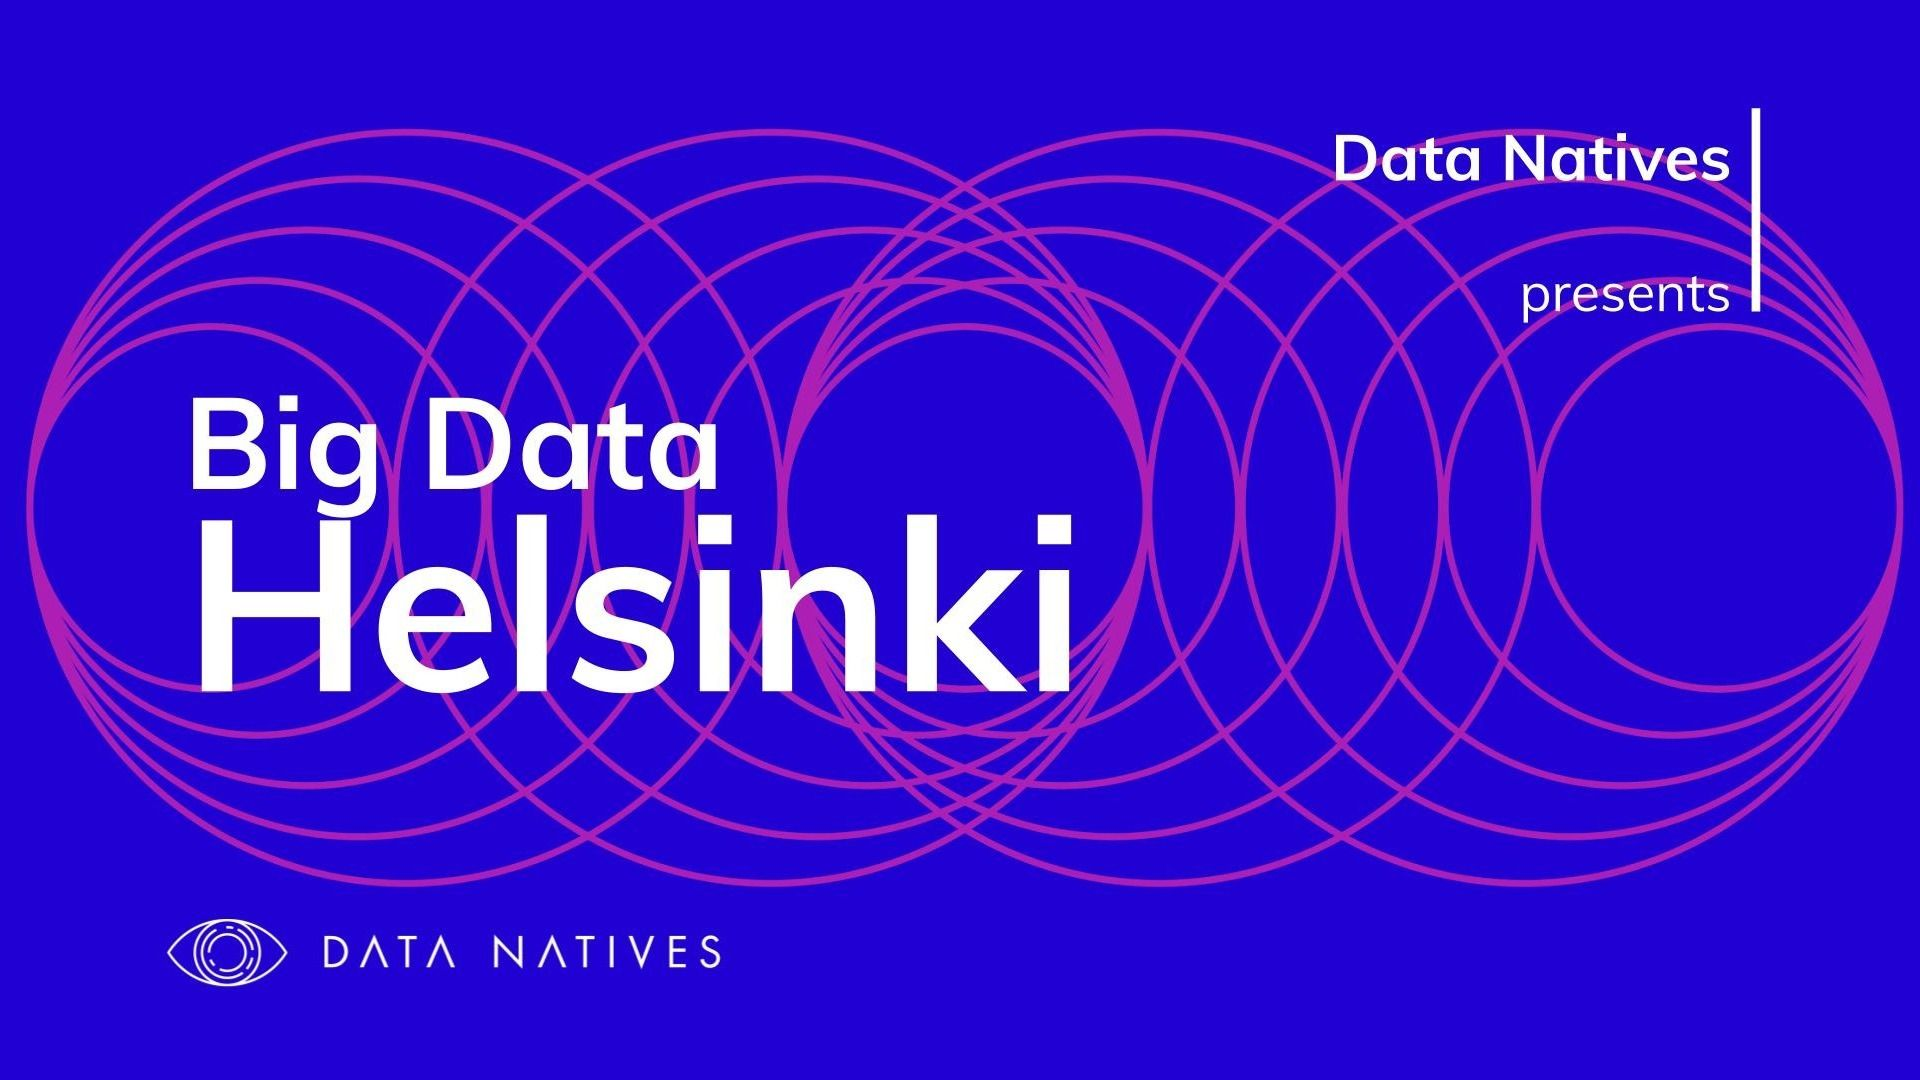 Big Data, Helsinki